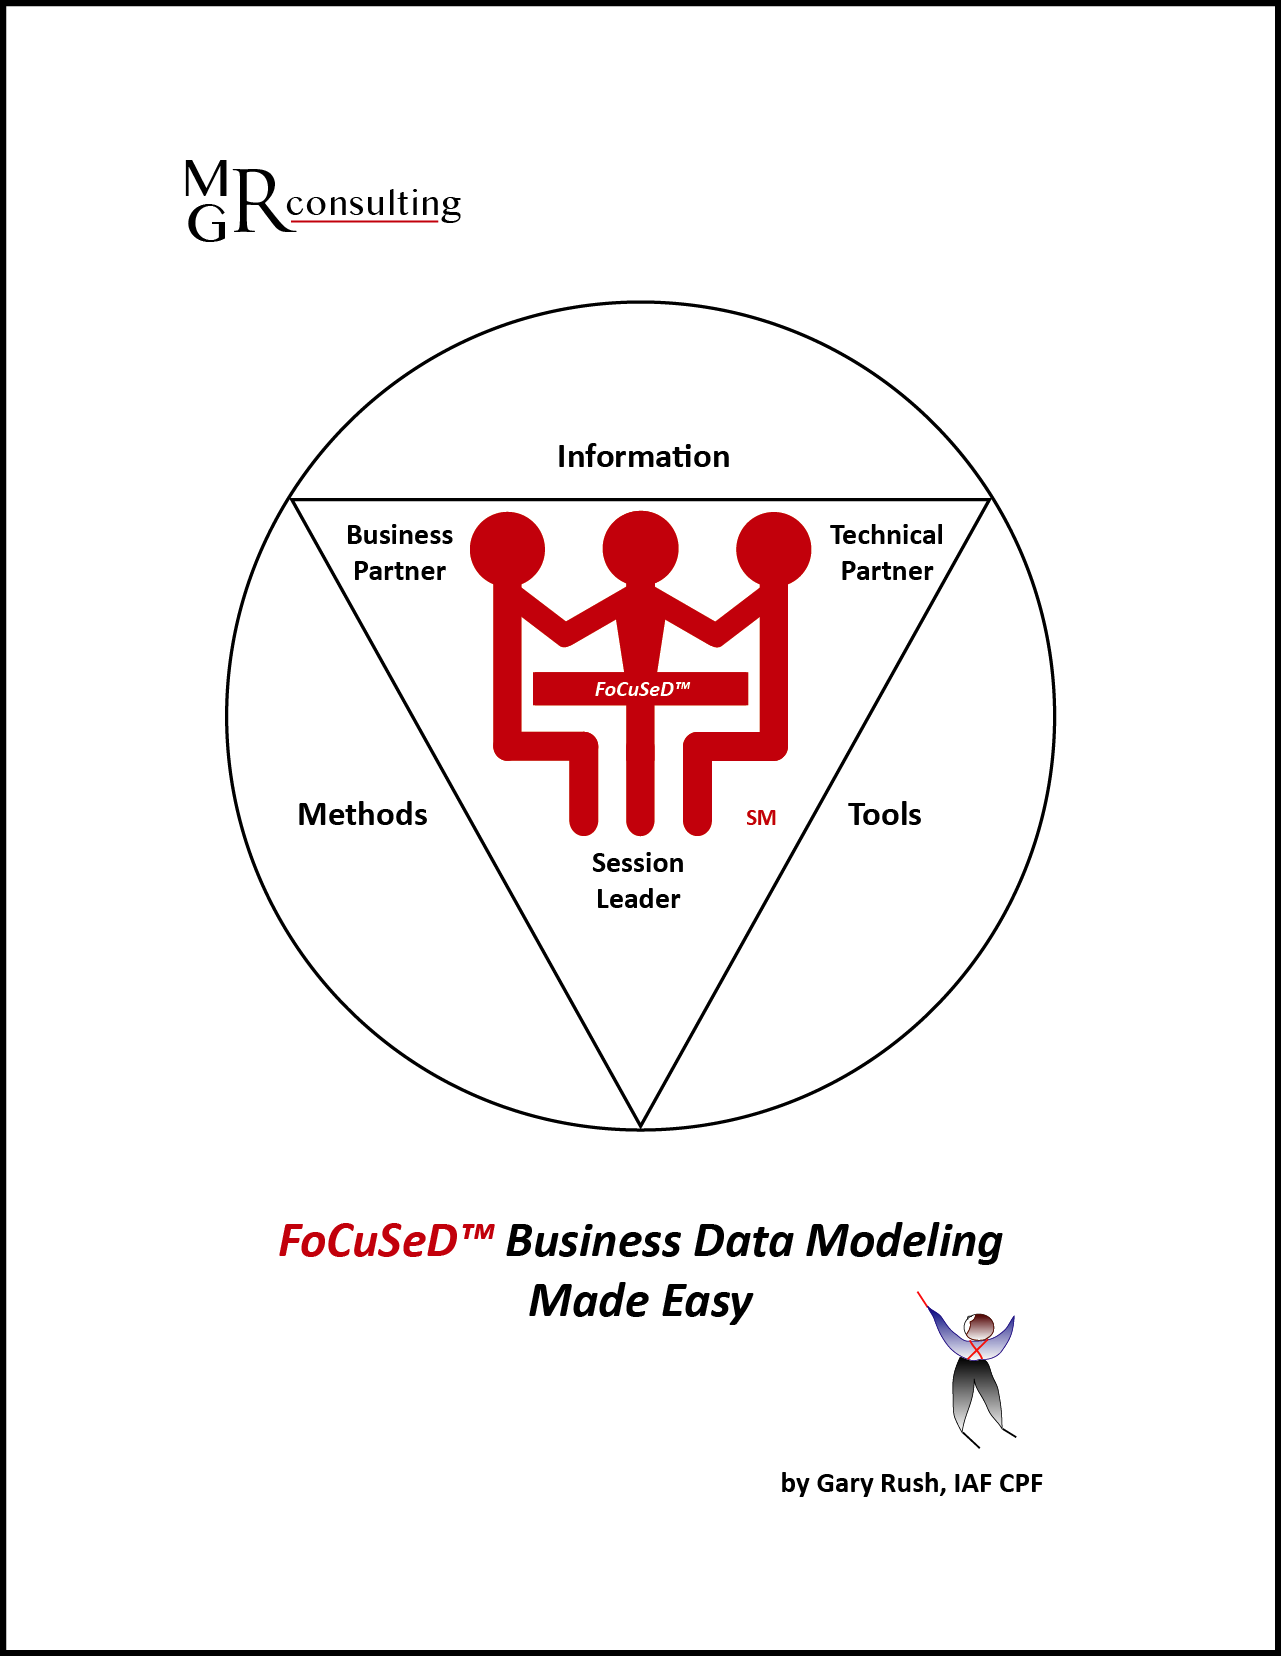 FoCuSeD™ Business Data Modeling Made Easy